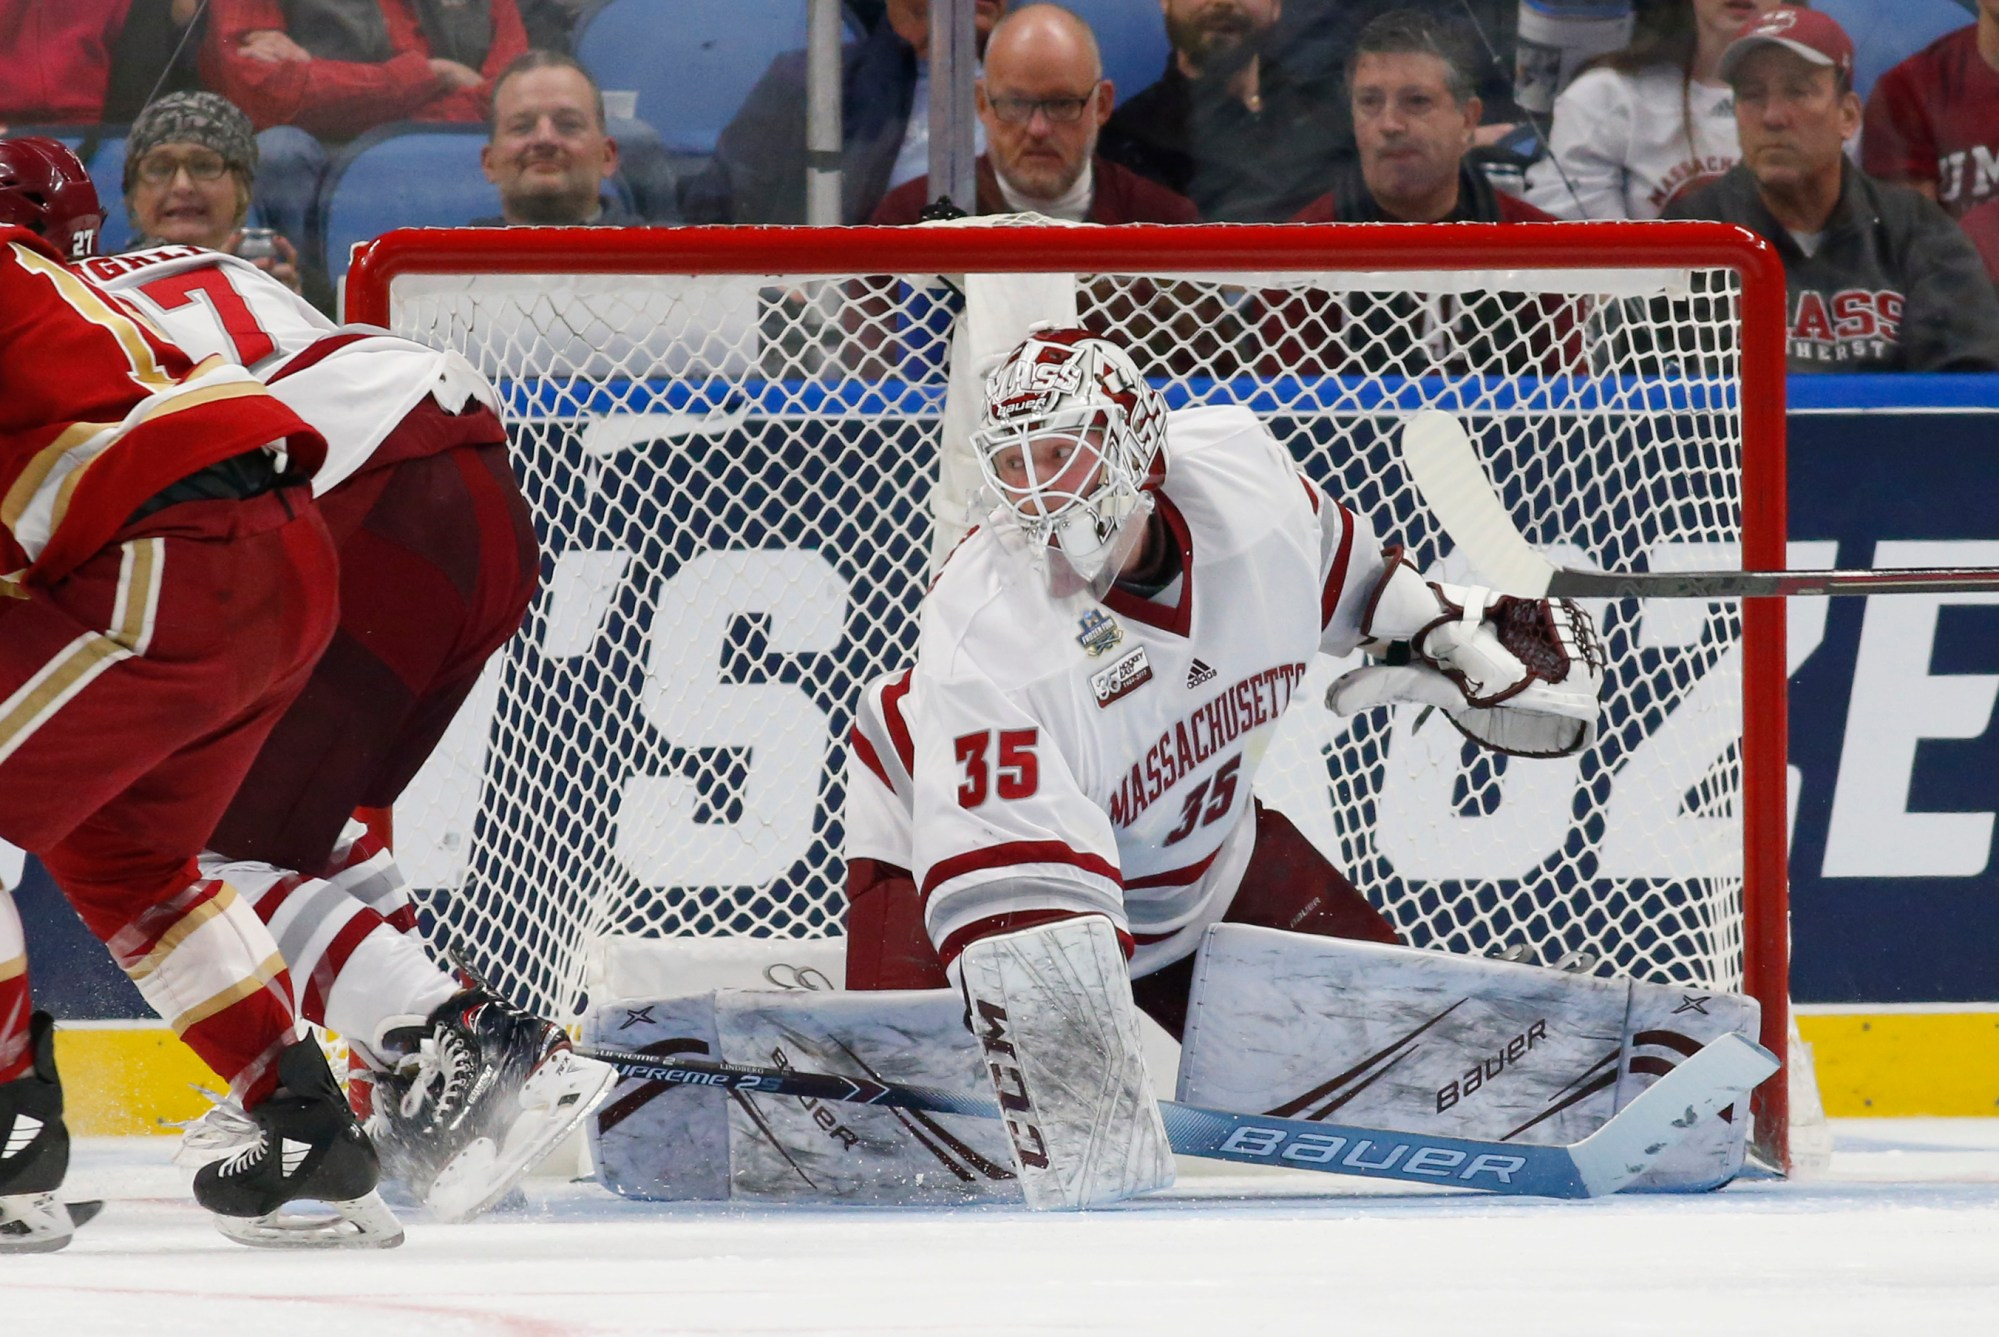 ncaa_umass_denver_hockey_48690-159532.jpg39199436